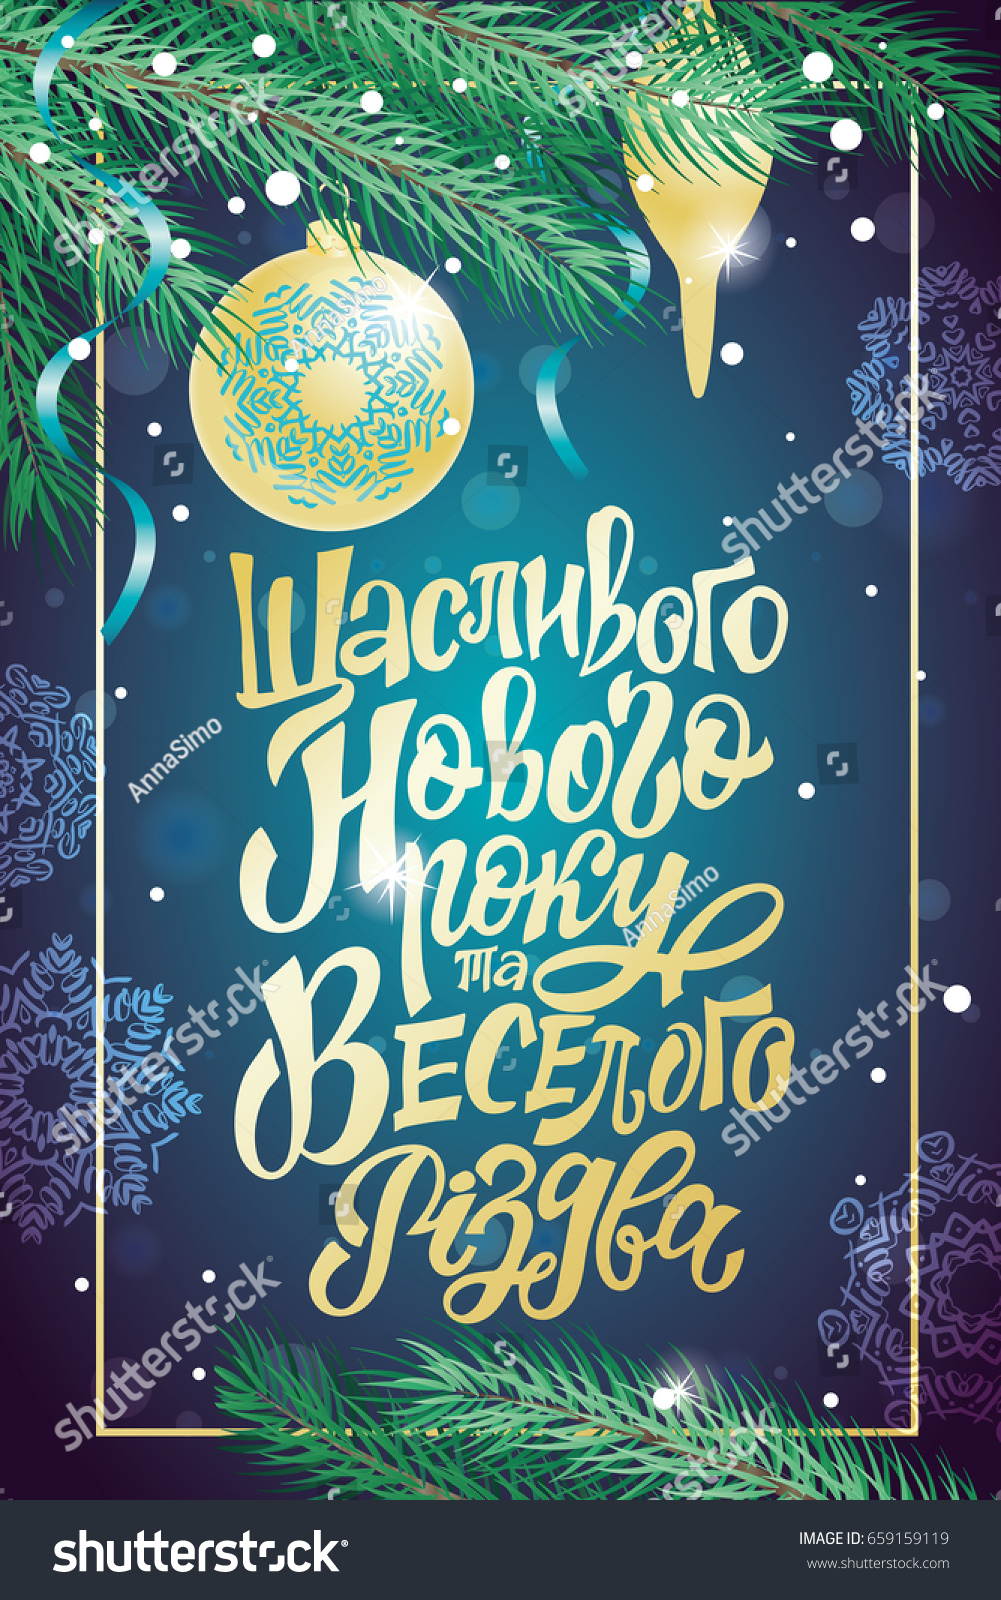 merry christmas and happy new year greeting poster with hand made lettering on ukrainian language